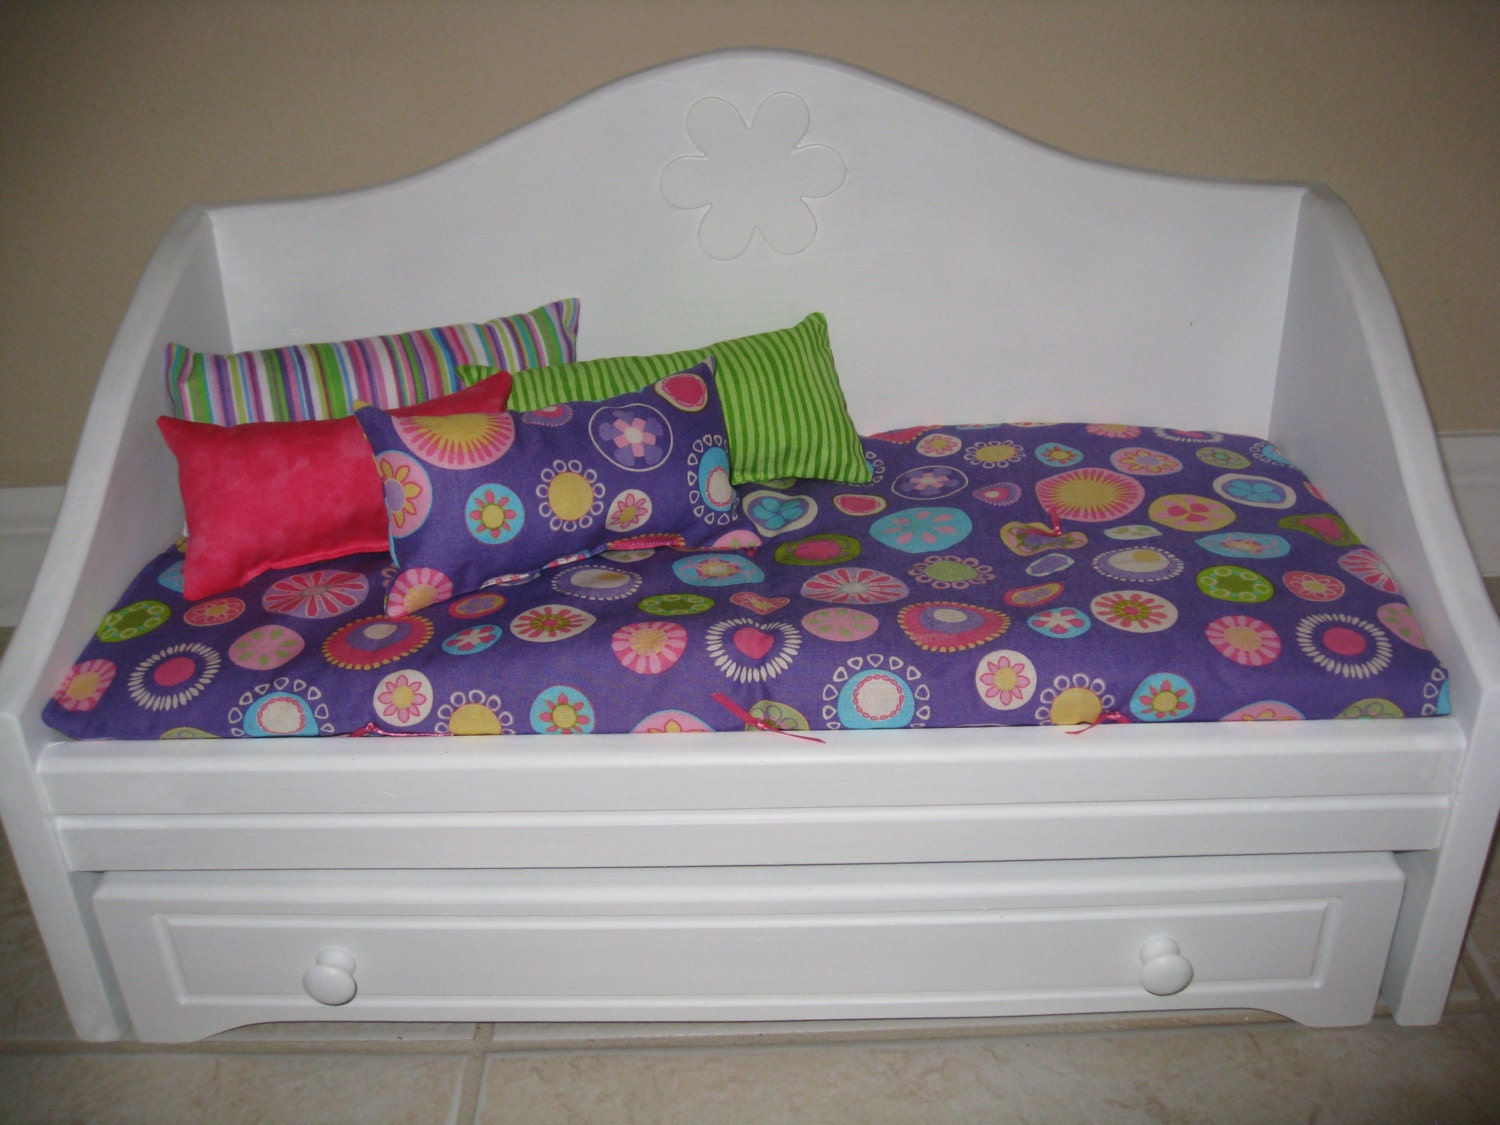 Marvelous photograph of Trundle Bed and Bedding for 18 inch Doll by dollygramma on Etsy with #743C3F color and 1500x1125 pixels